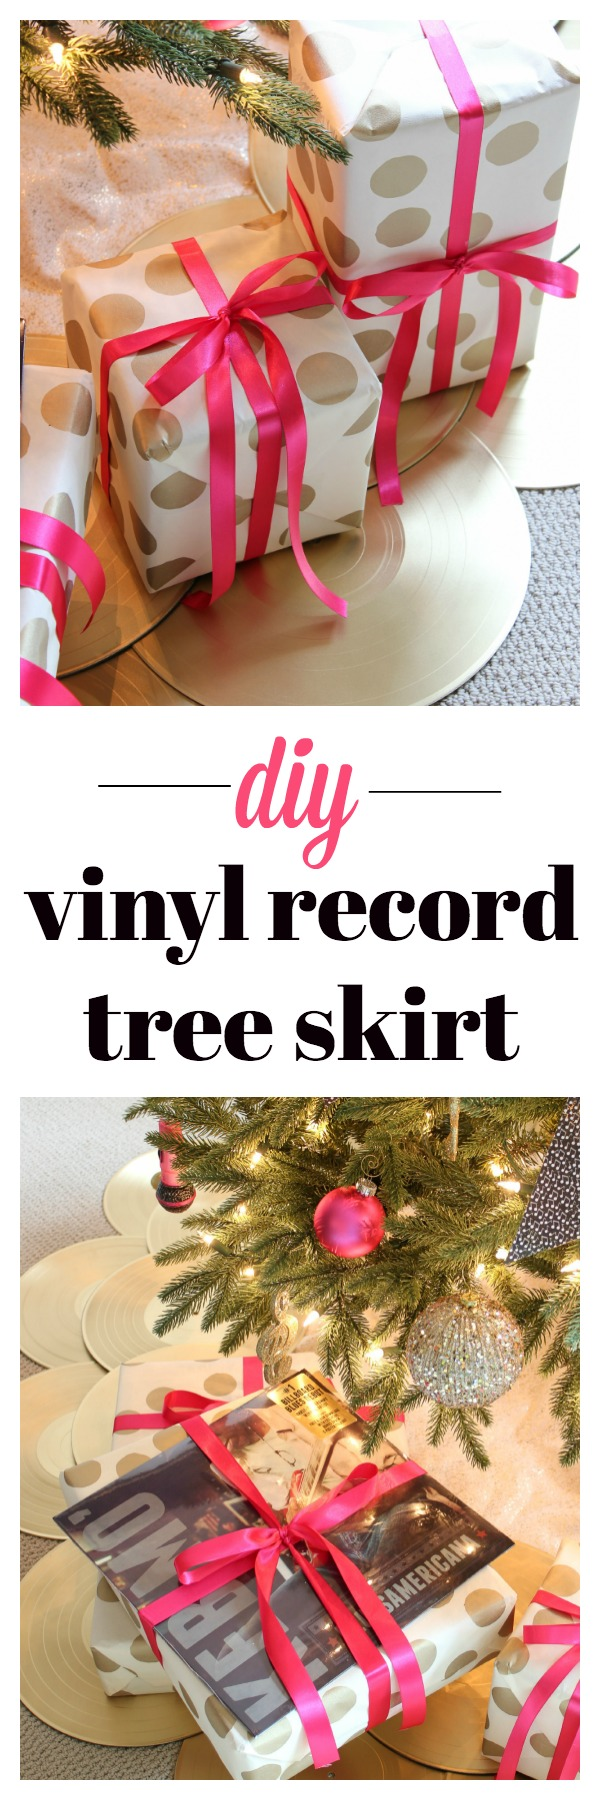 DIY Vinyl Record Tree Skirt